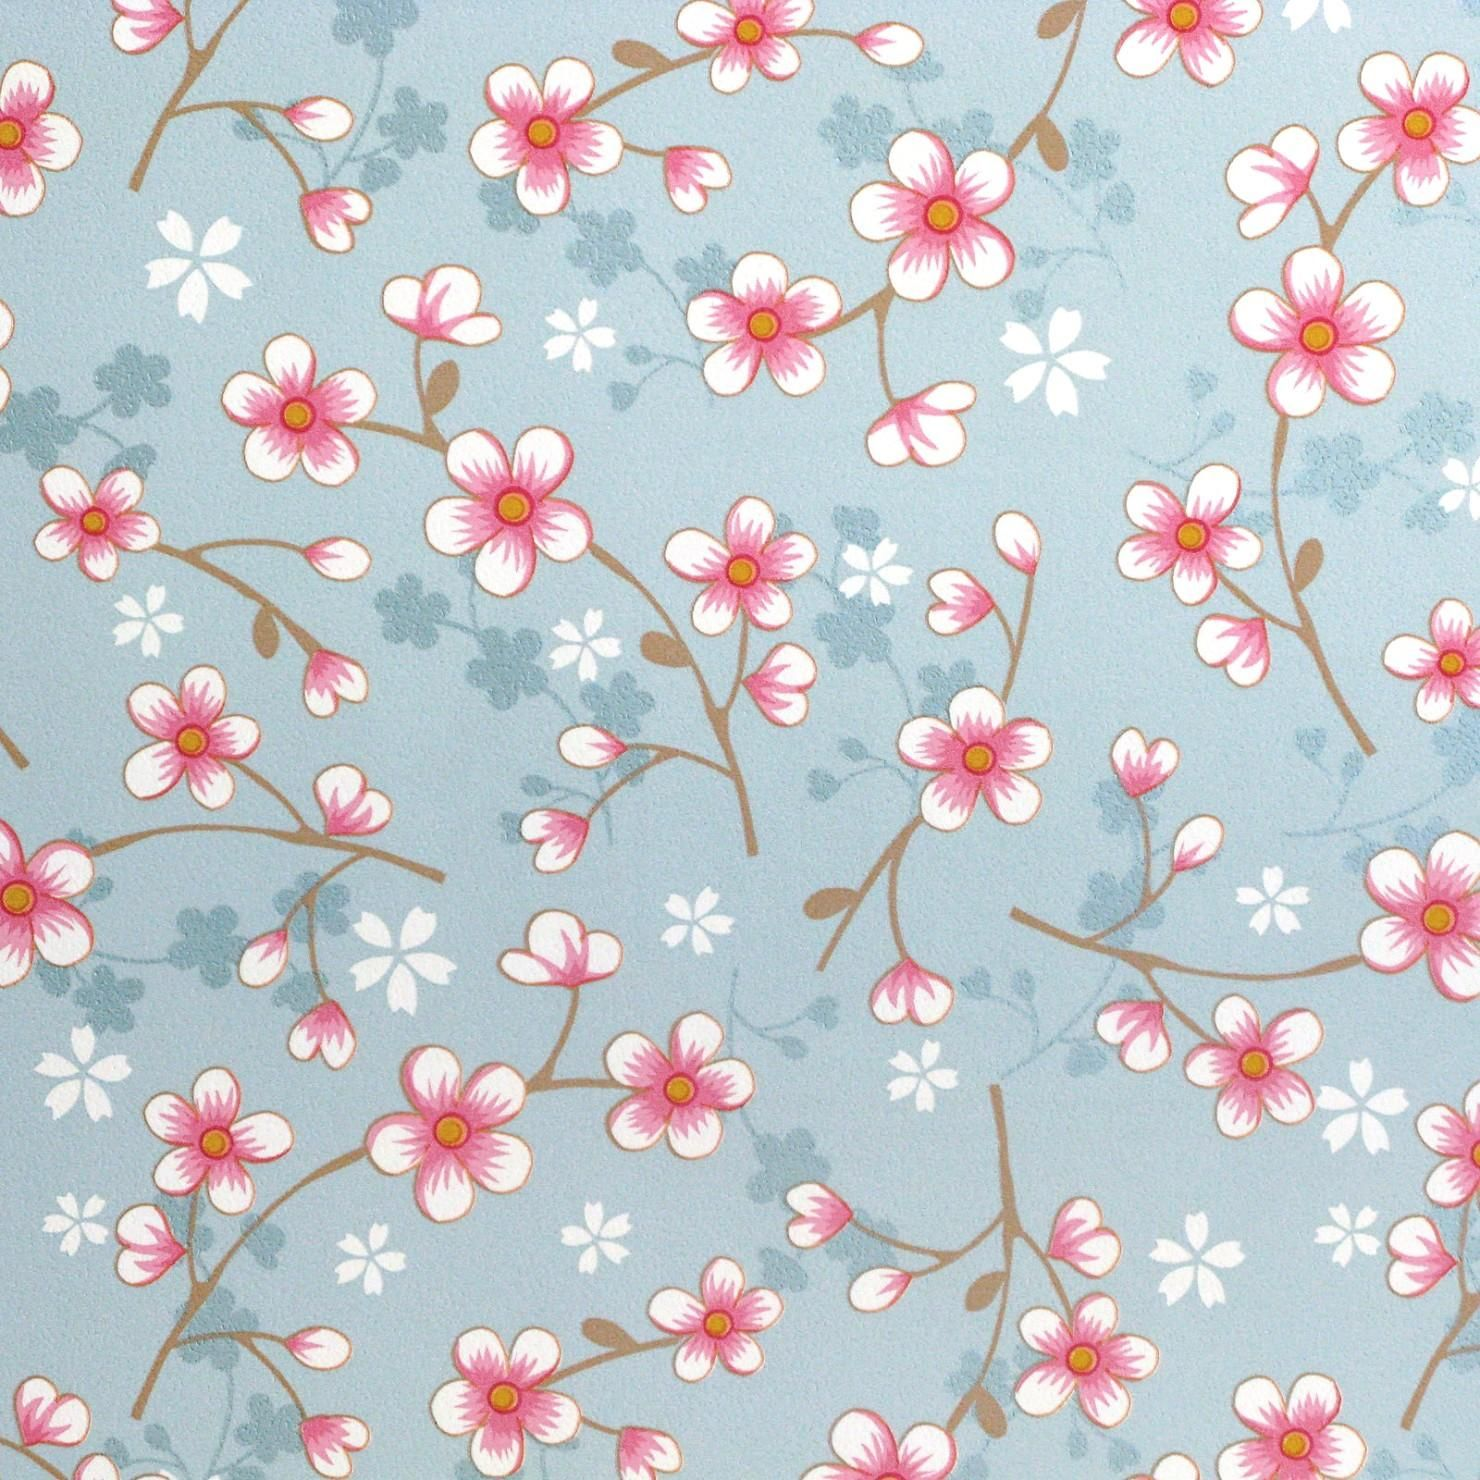 Google Image Result for http://www.spirit-boutique.com/files/imagecache/2000x2000_Scale/Pip-Studio-behang-cherry-blossem-lichtblauw.jpg